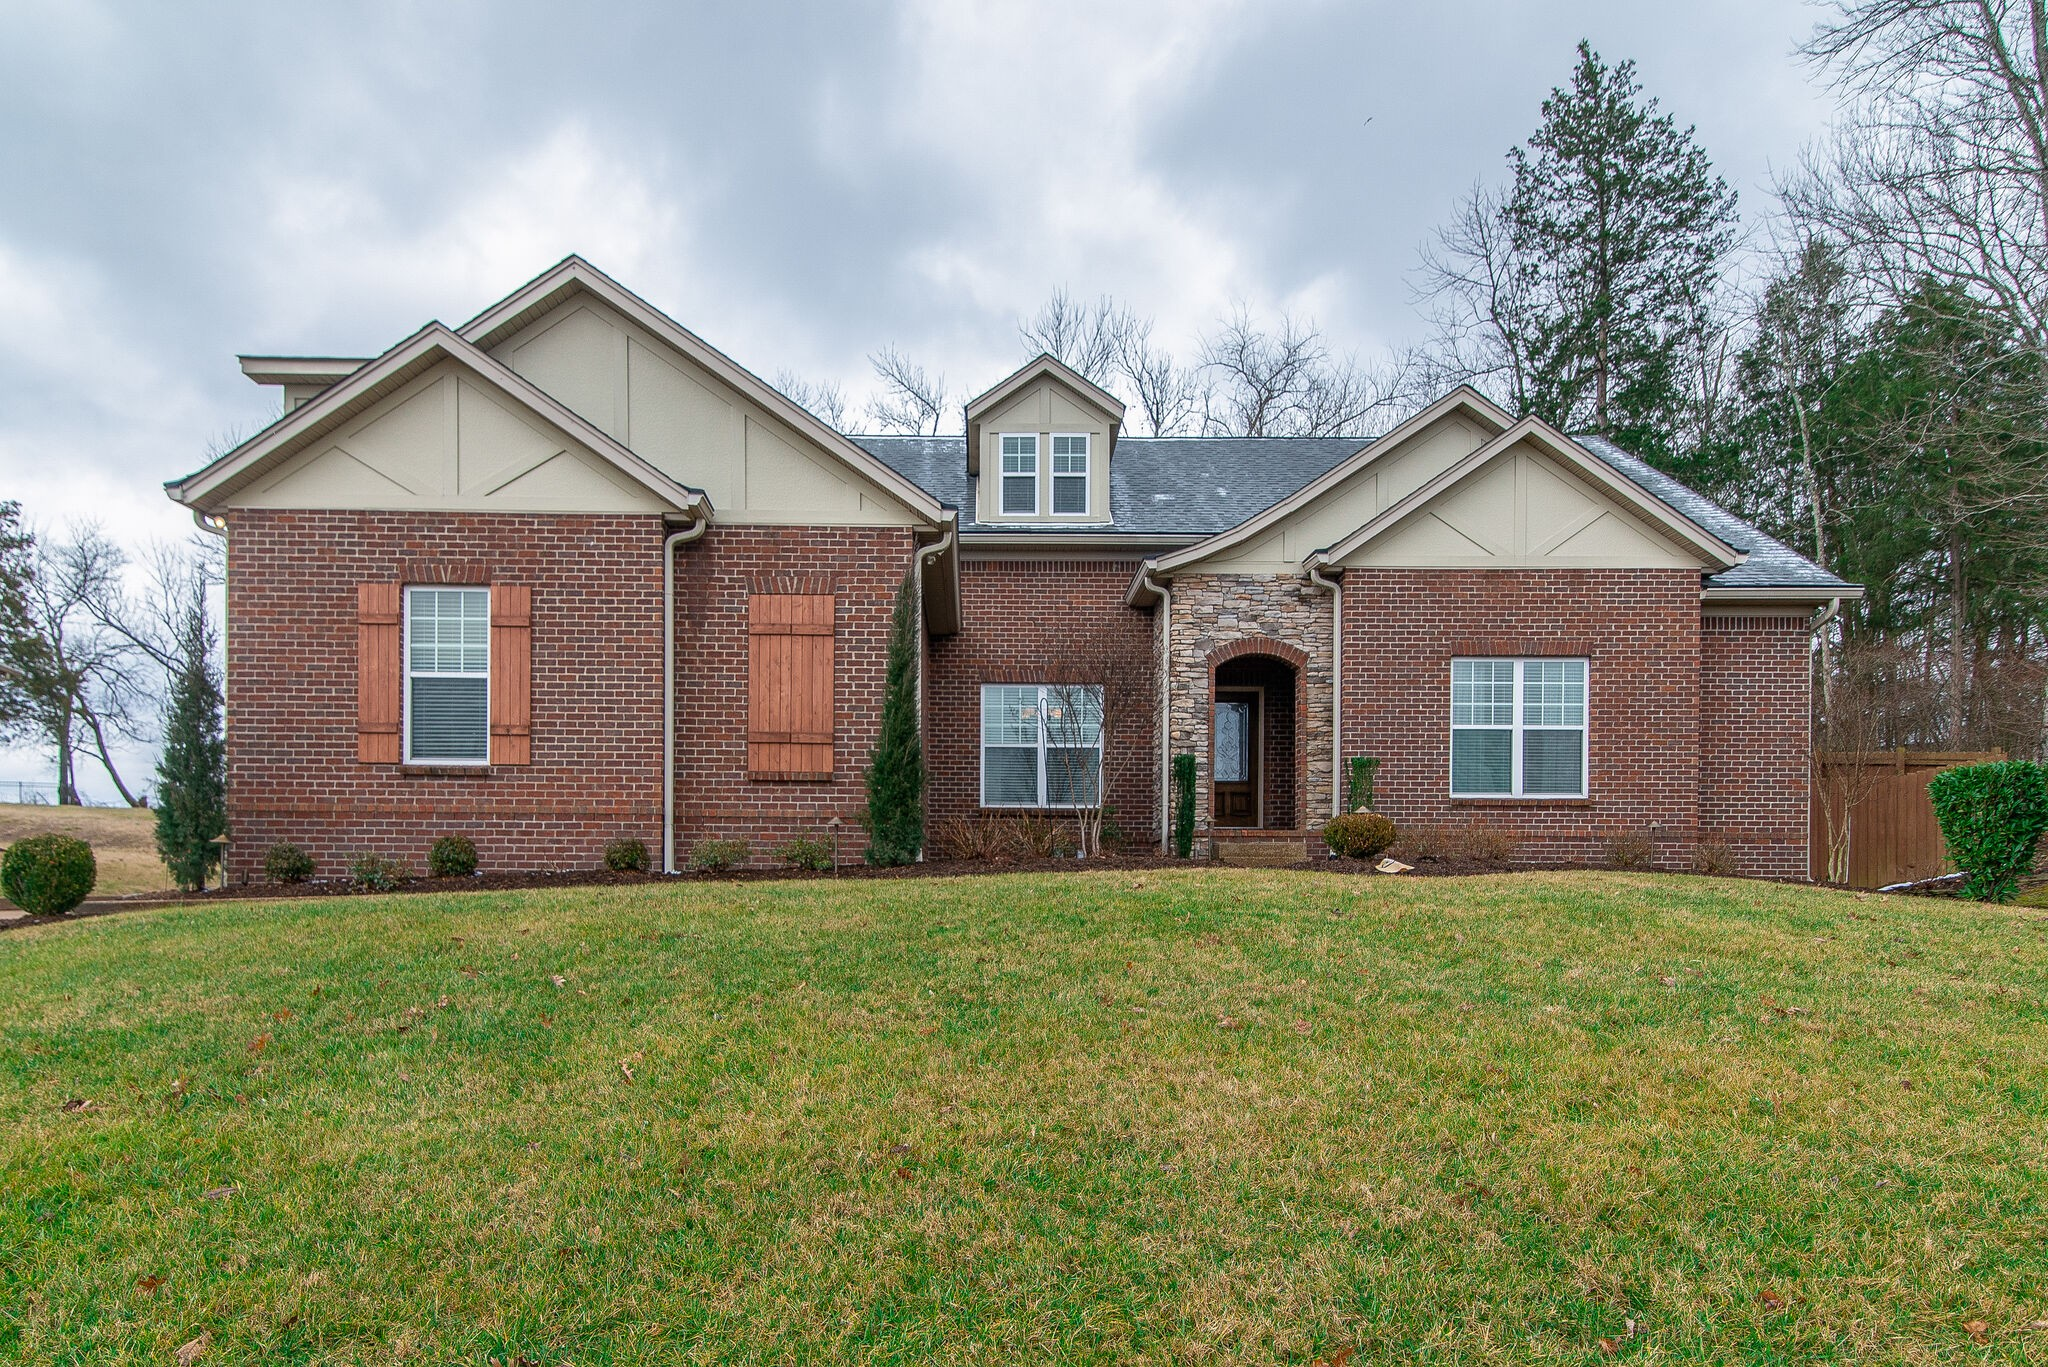 9106 Brooks Xing Property Photo - Mount Juliet, TN real estate listing